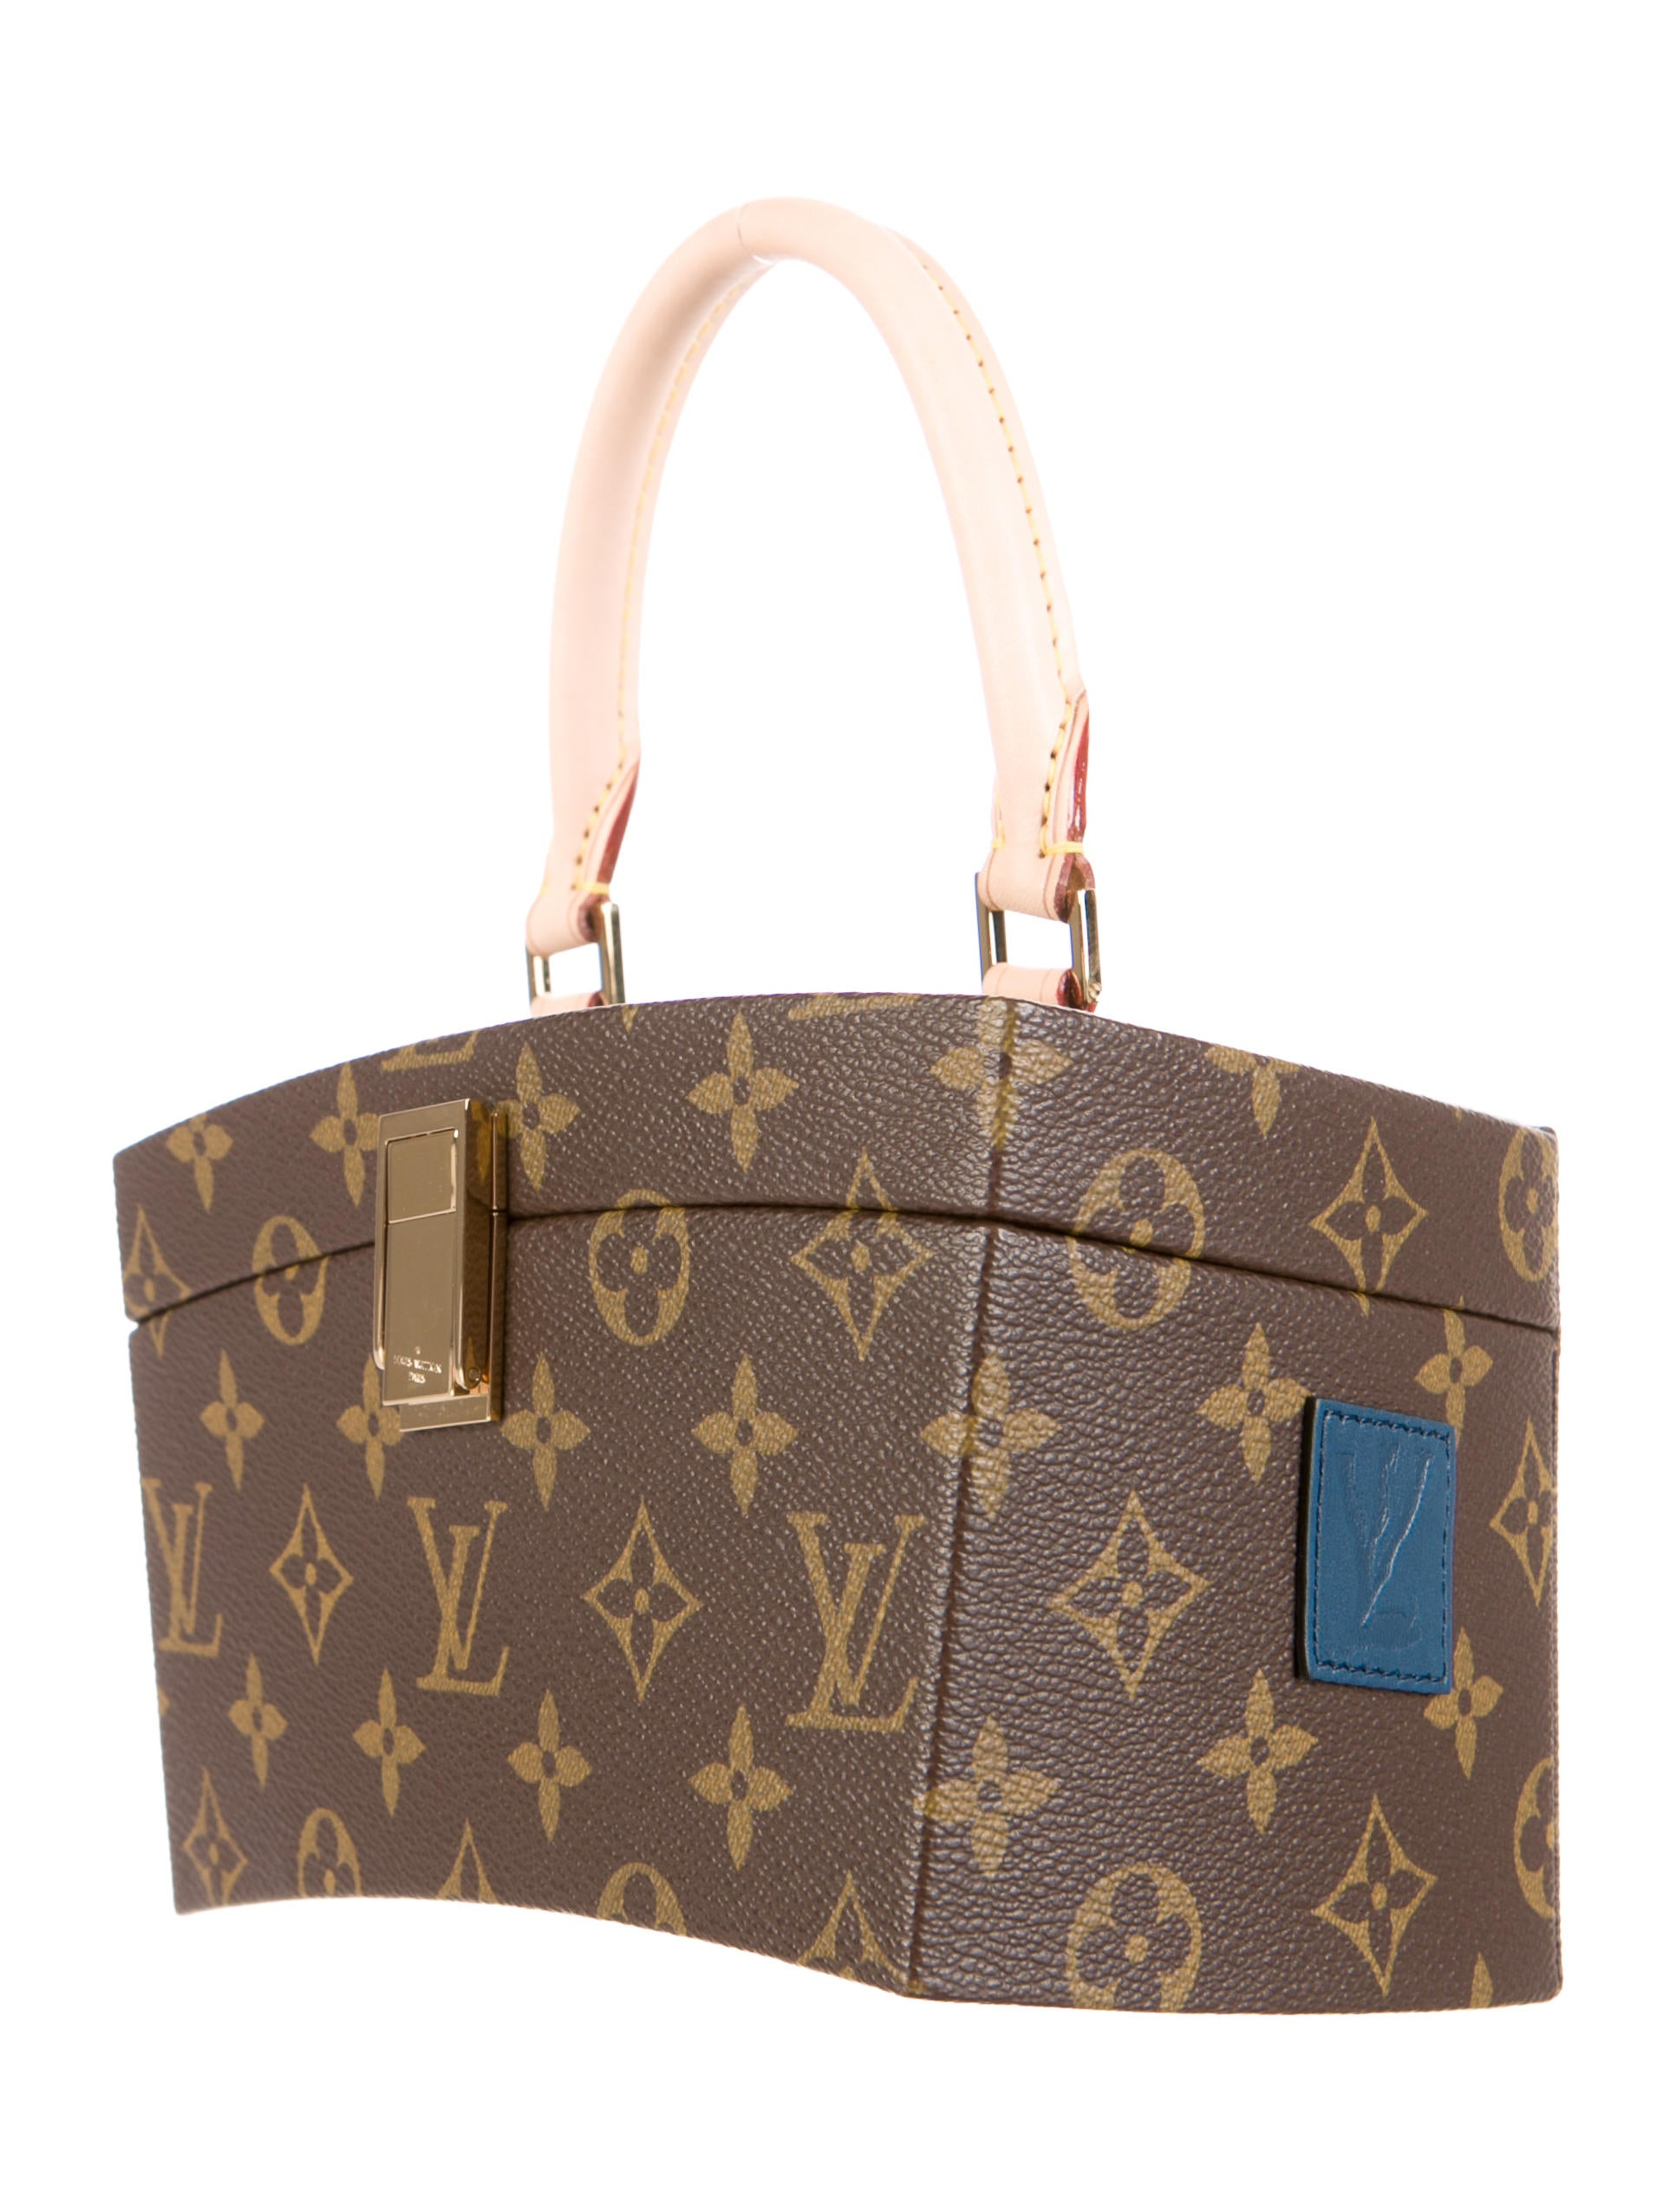 Louis vuitton monogram frank gehry twisted box handbags lou78350 the realreal - Frank gehry louis vuitton ...